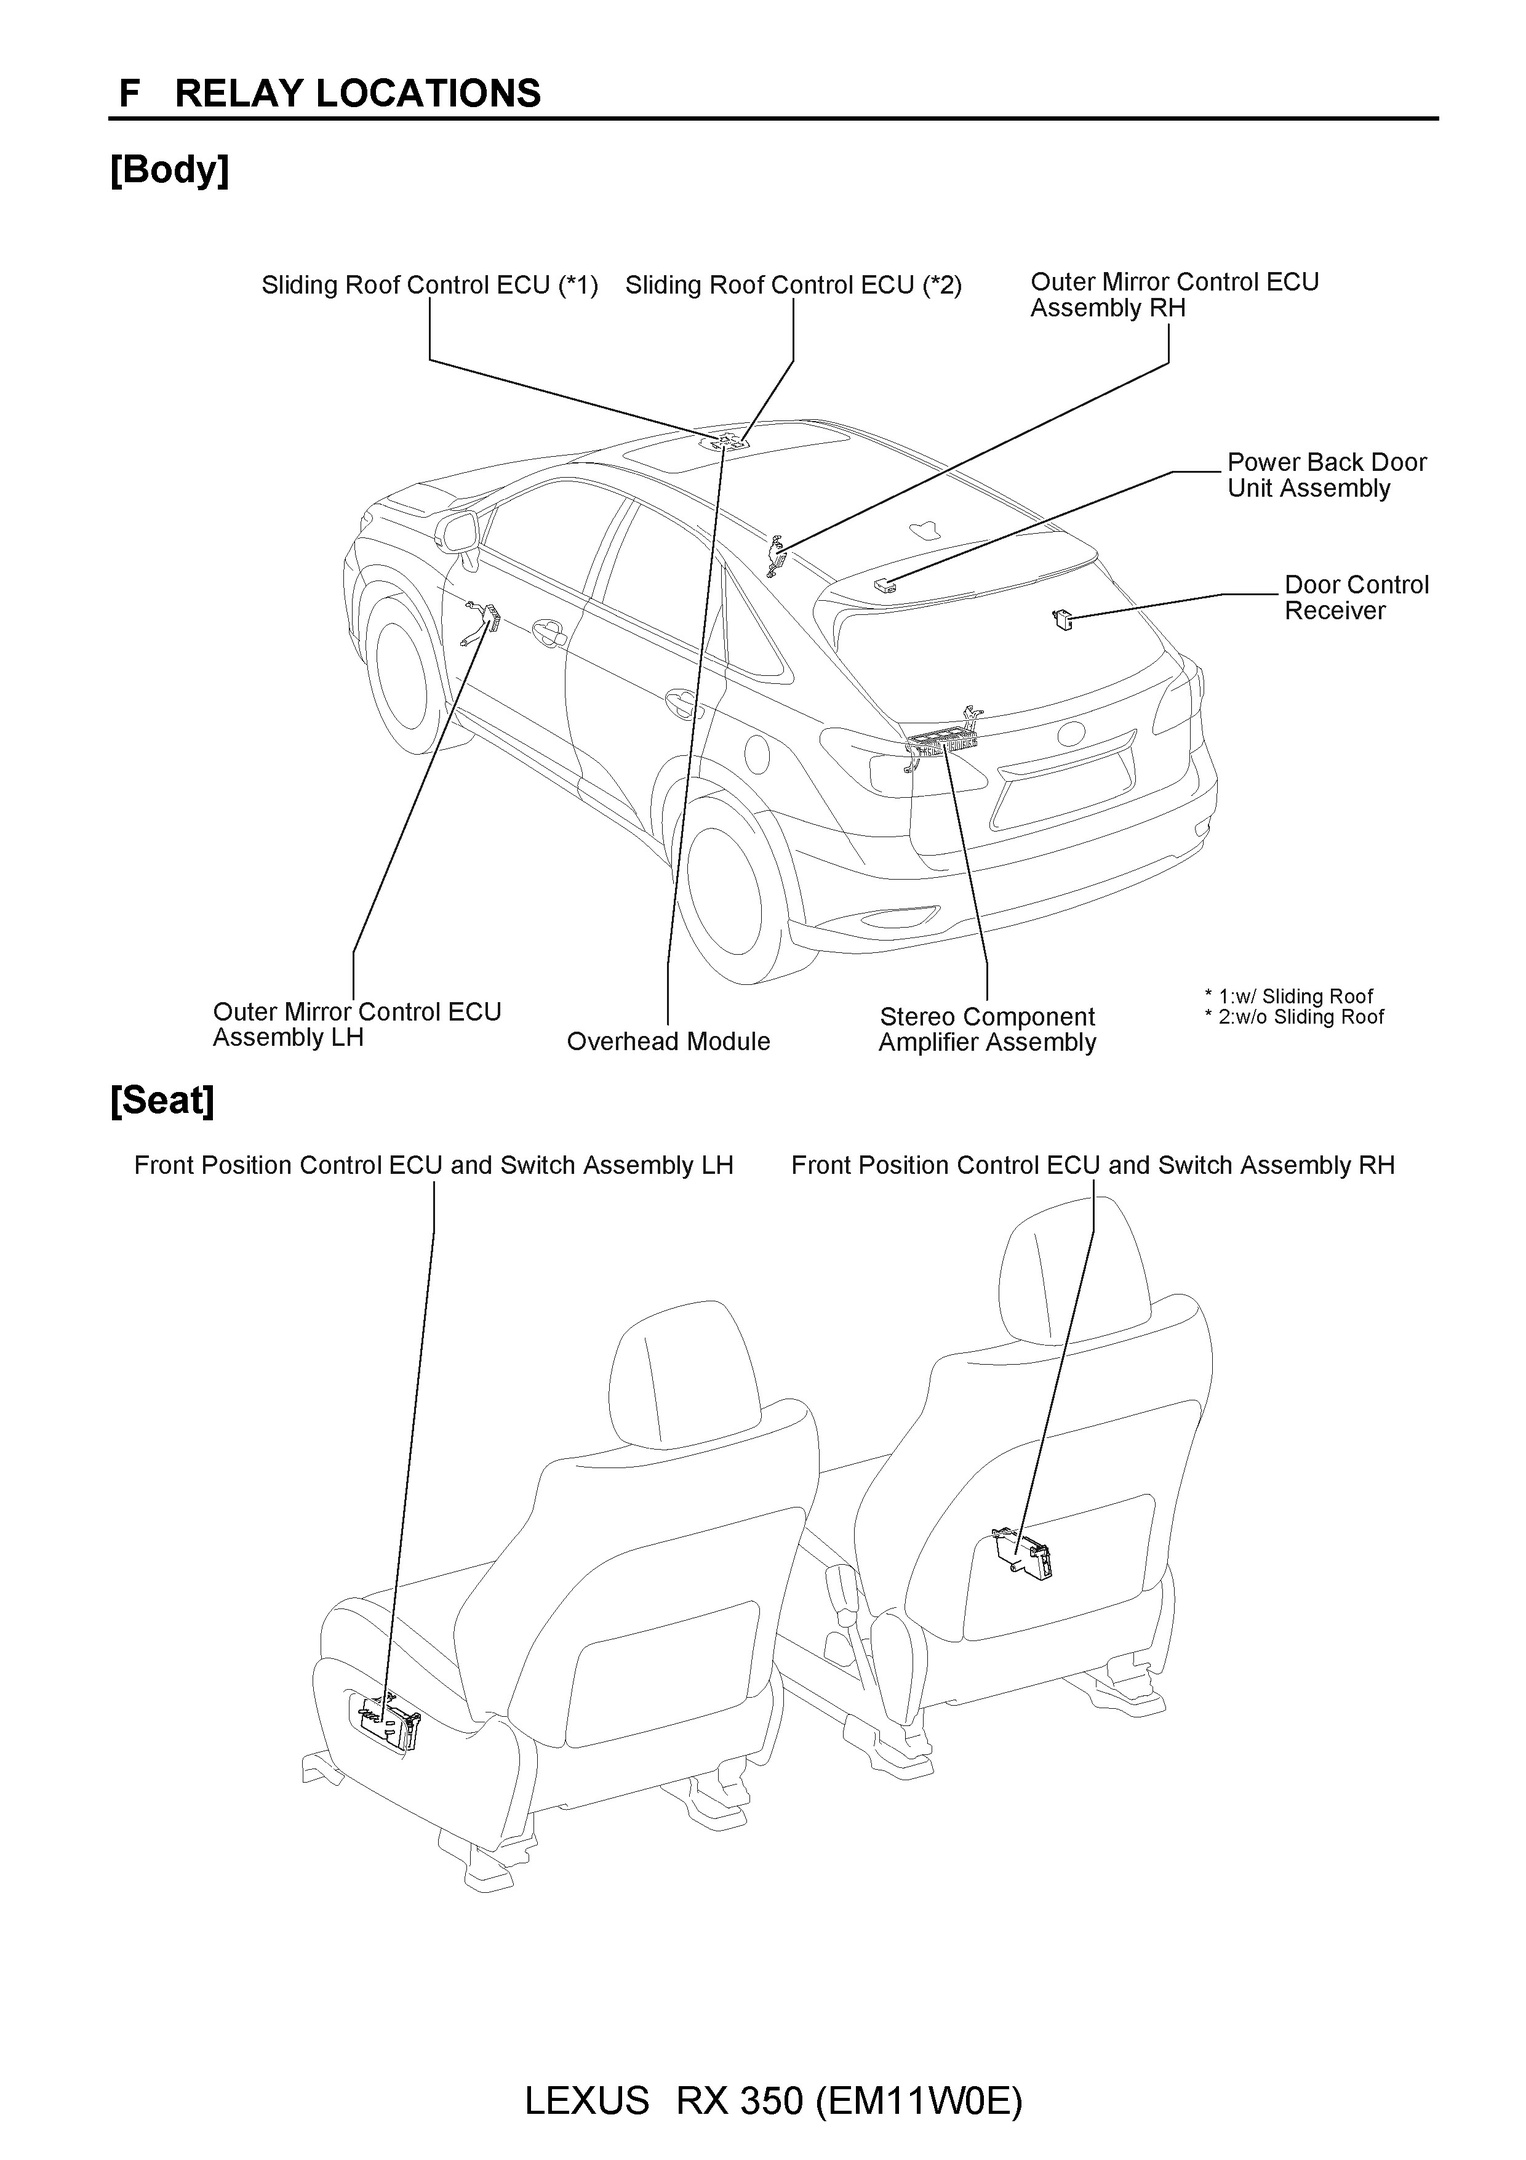 hight resolution of free 2010 lexus rx350 oem electrical wiring diagram pdf